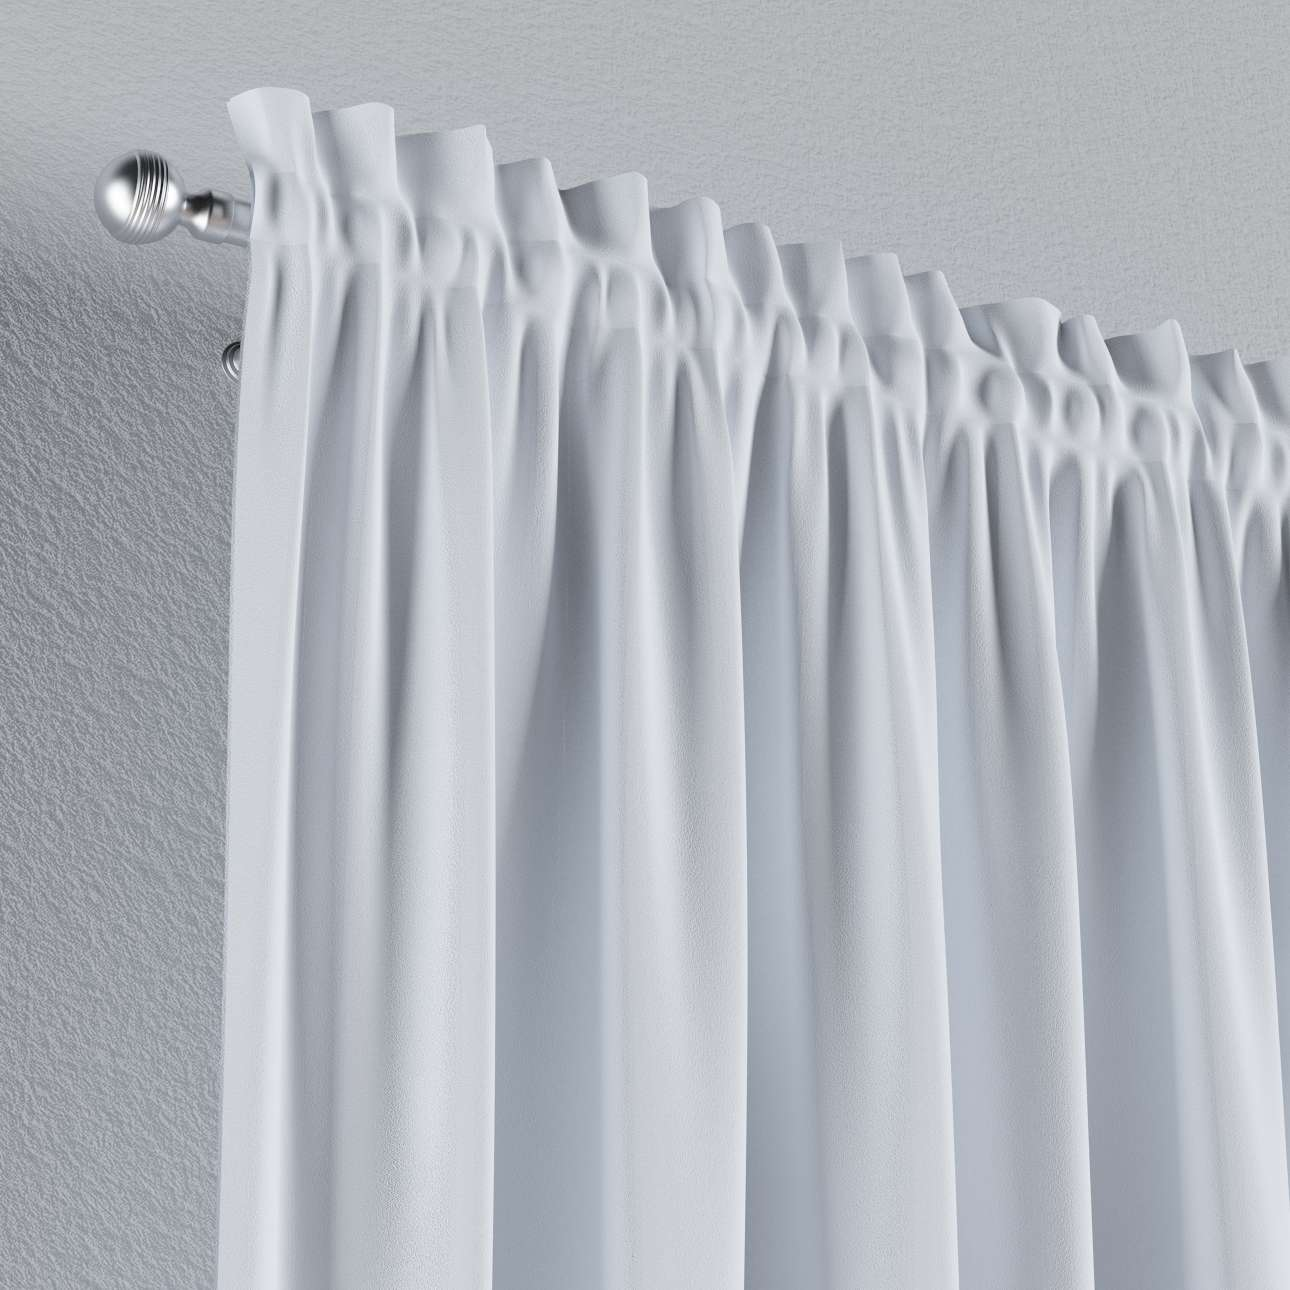 Blackout slot and frill curtains 140 x 260 cm (approx. 55 x 102 inch) in collection Blackout, fabric: 269-01